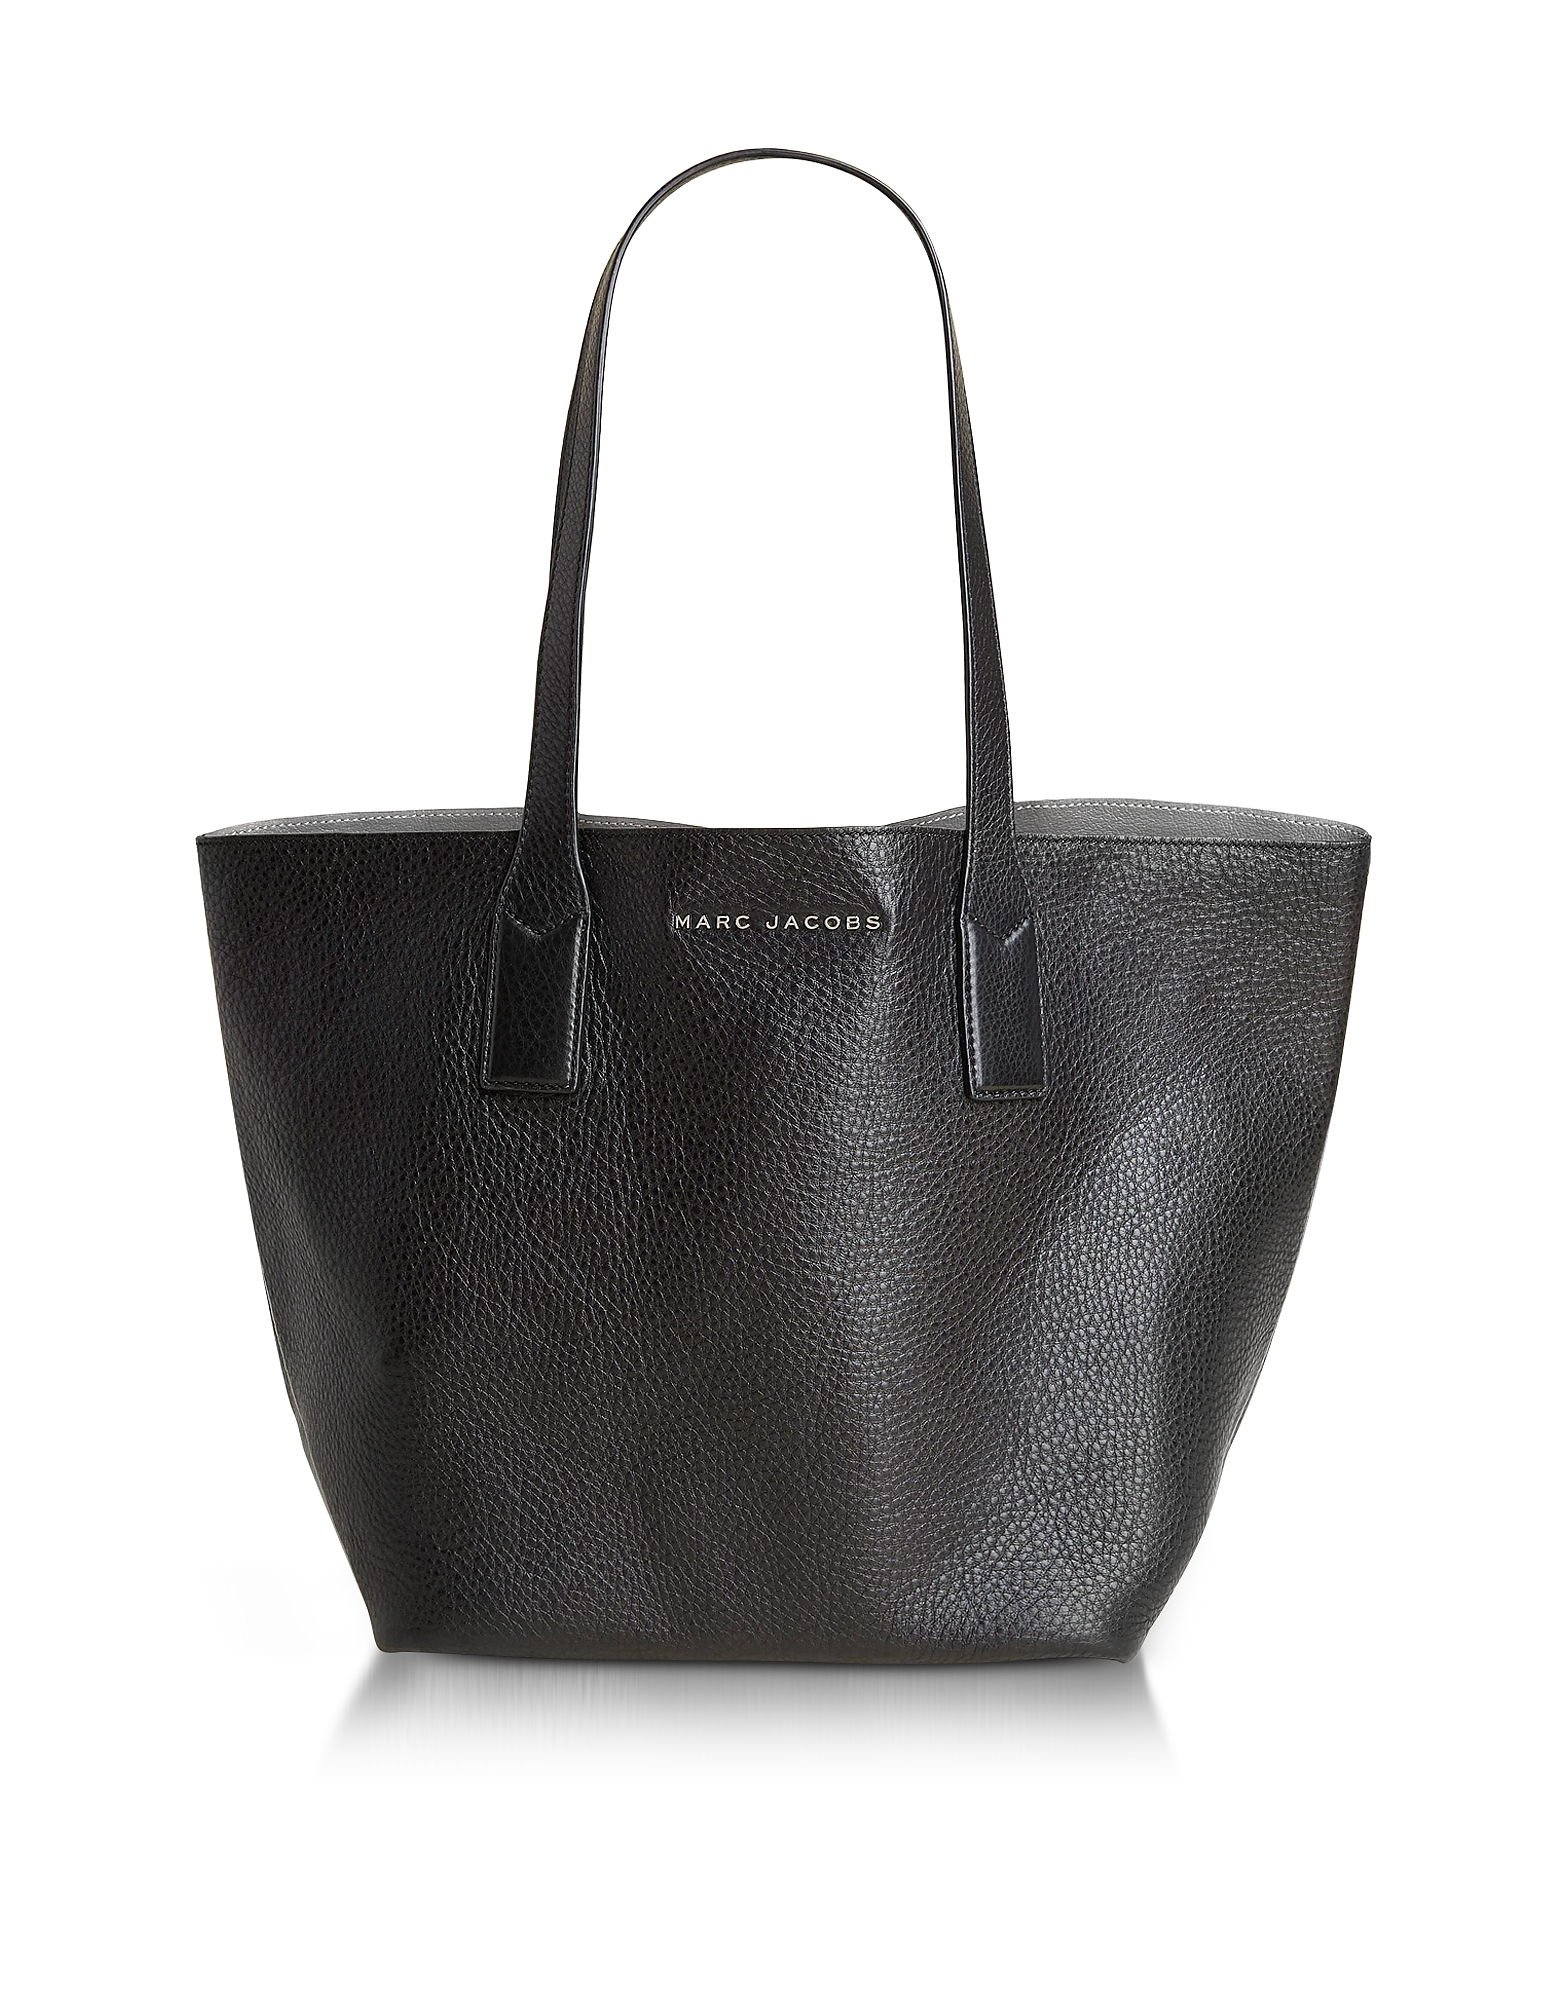 Marc Jacobs Handbags, Wingman Black and Silver Leather Shopping Bag